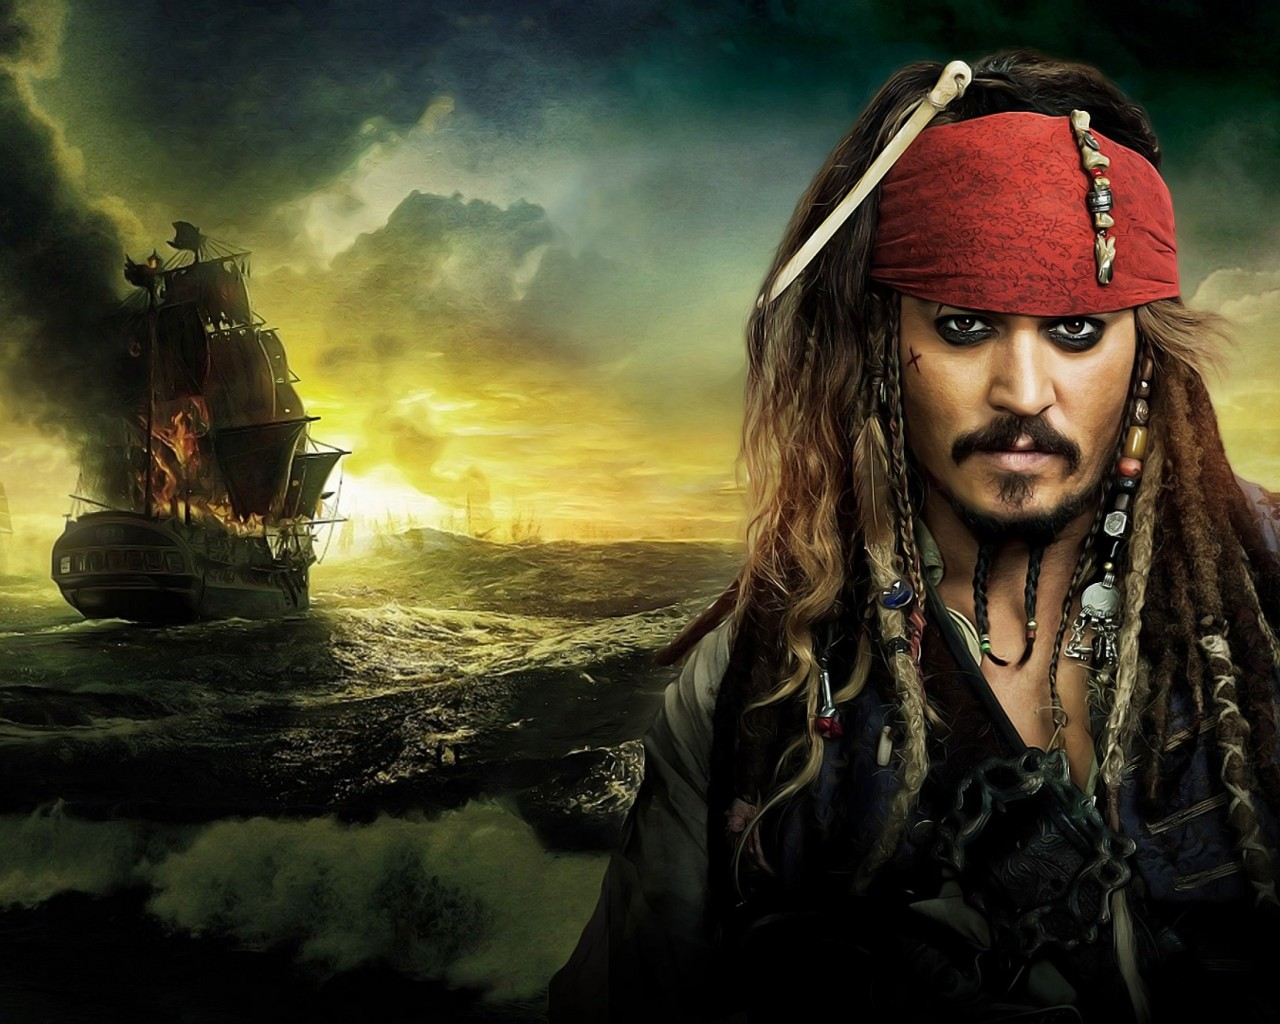 Jack Sparrow - Pirates Of The Caribbean Wallpaper for Desktop 1280x1024